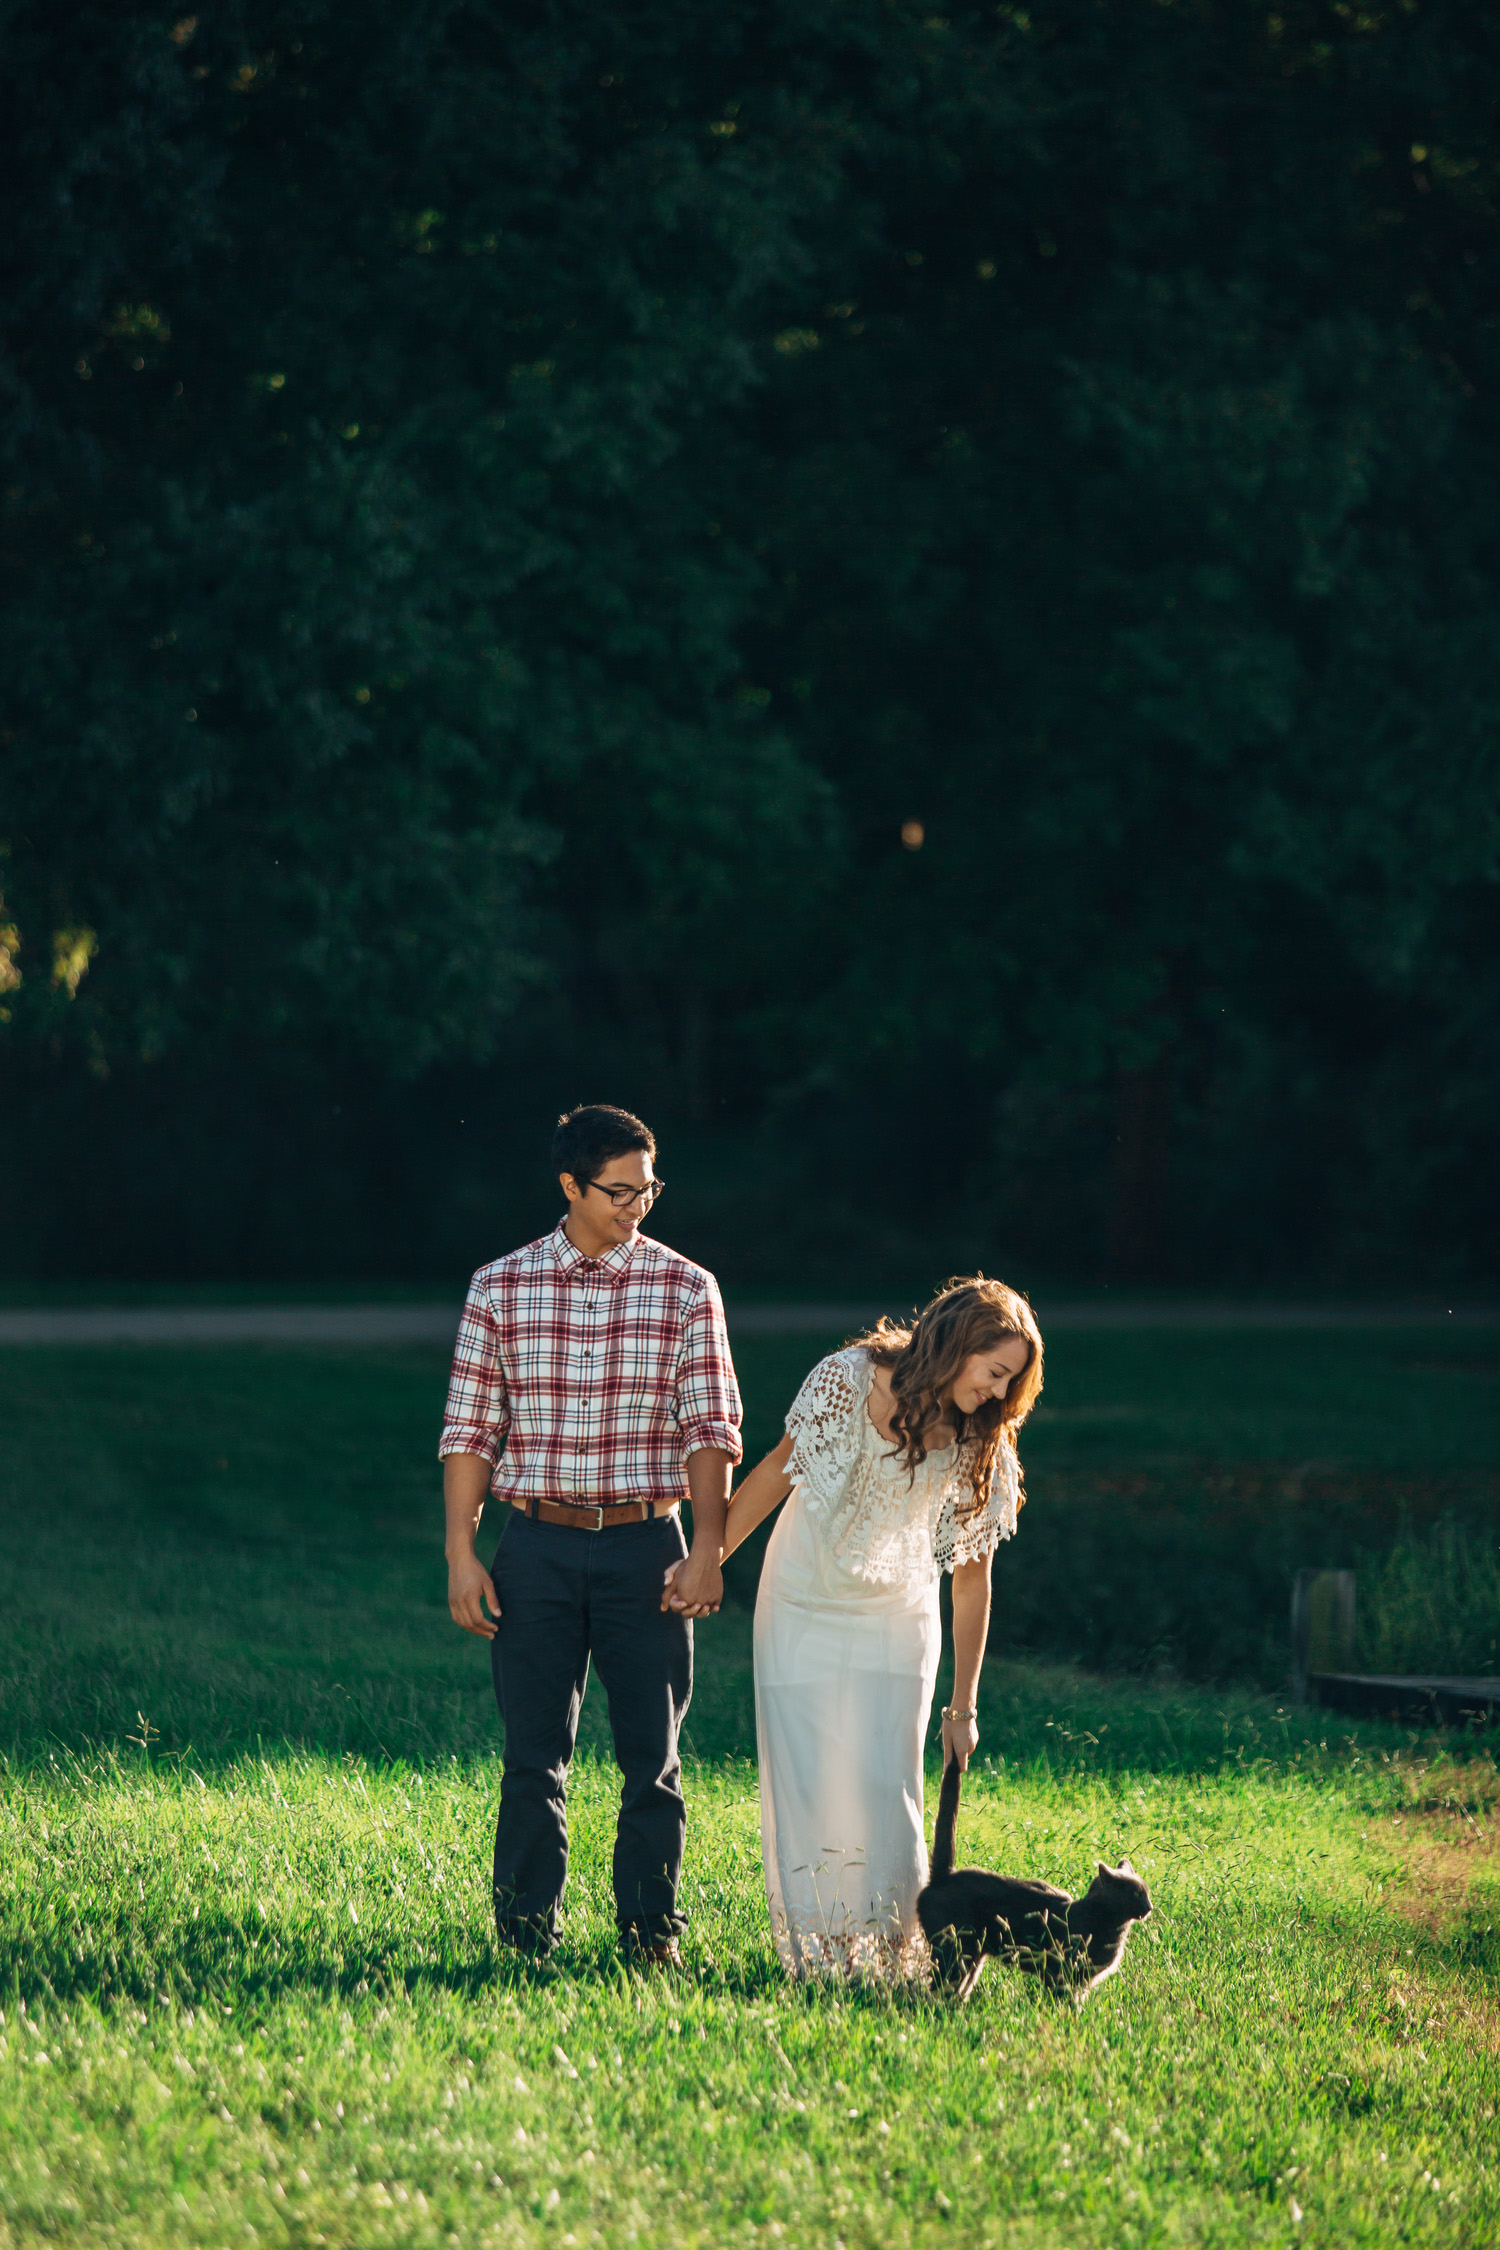 KliffordKate_Engagement_Favorites-11.jpg